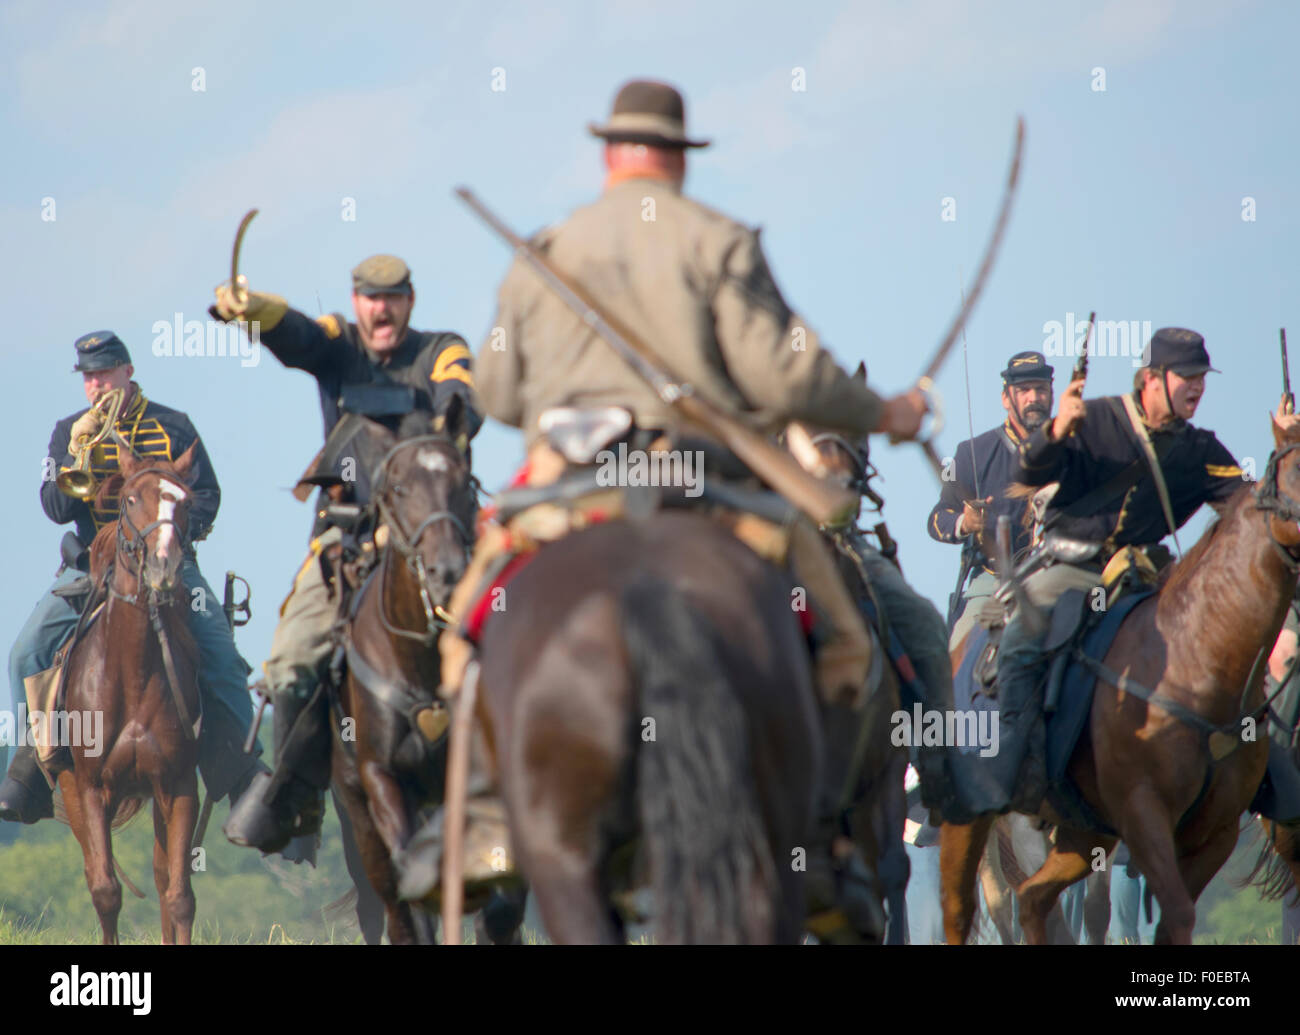 Gettysburg reenactment battle, Cavalry charge between Union and Confederate Armies. - Stock Image